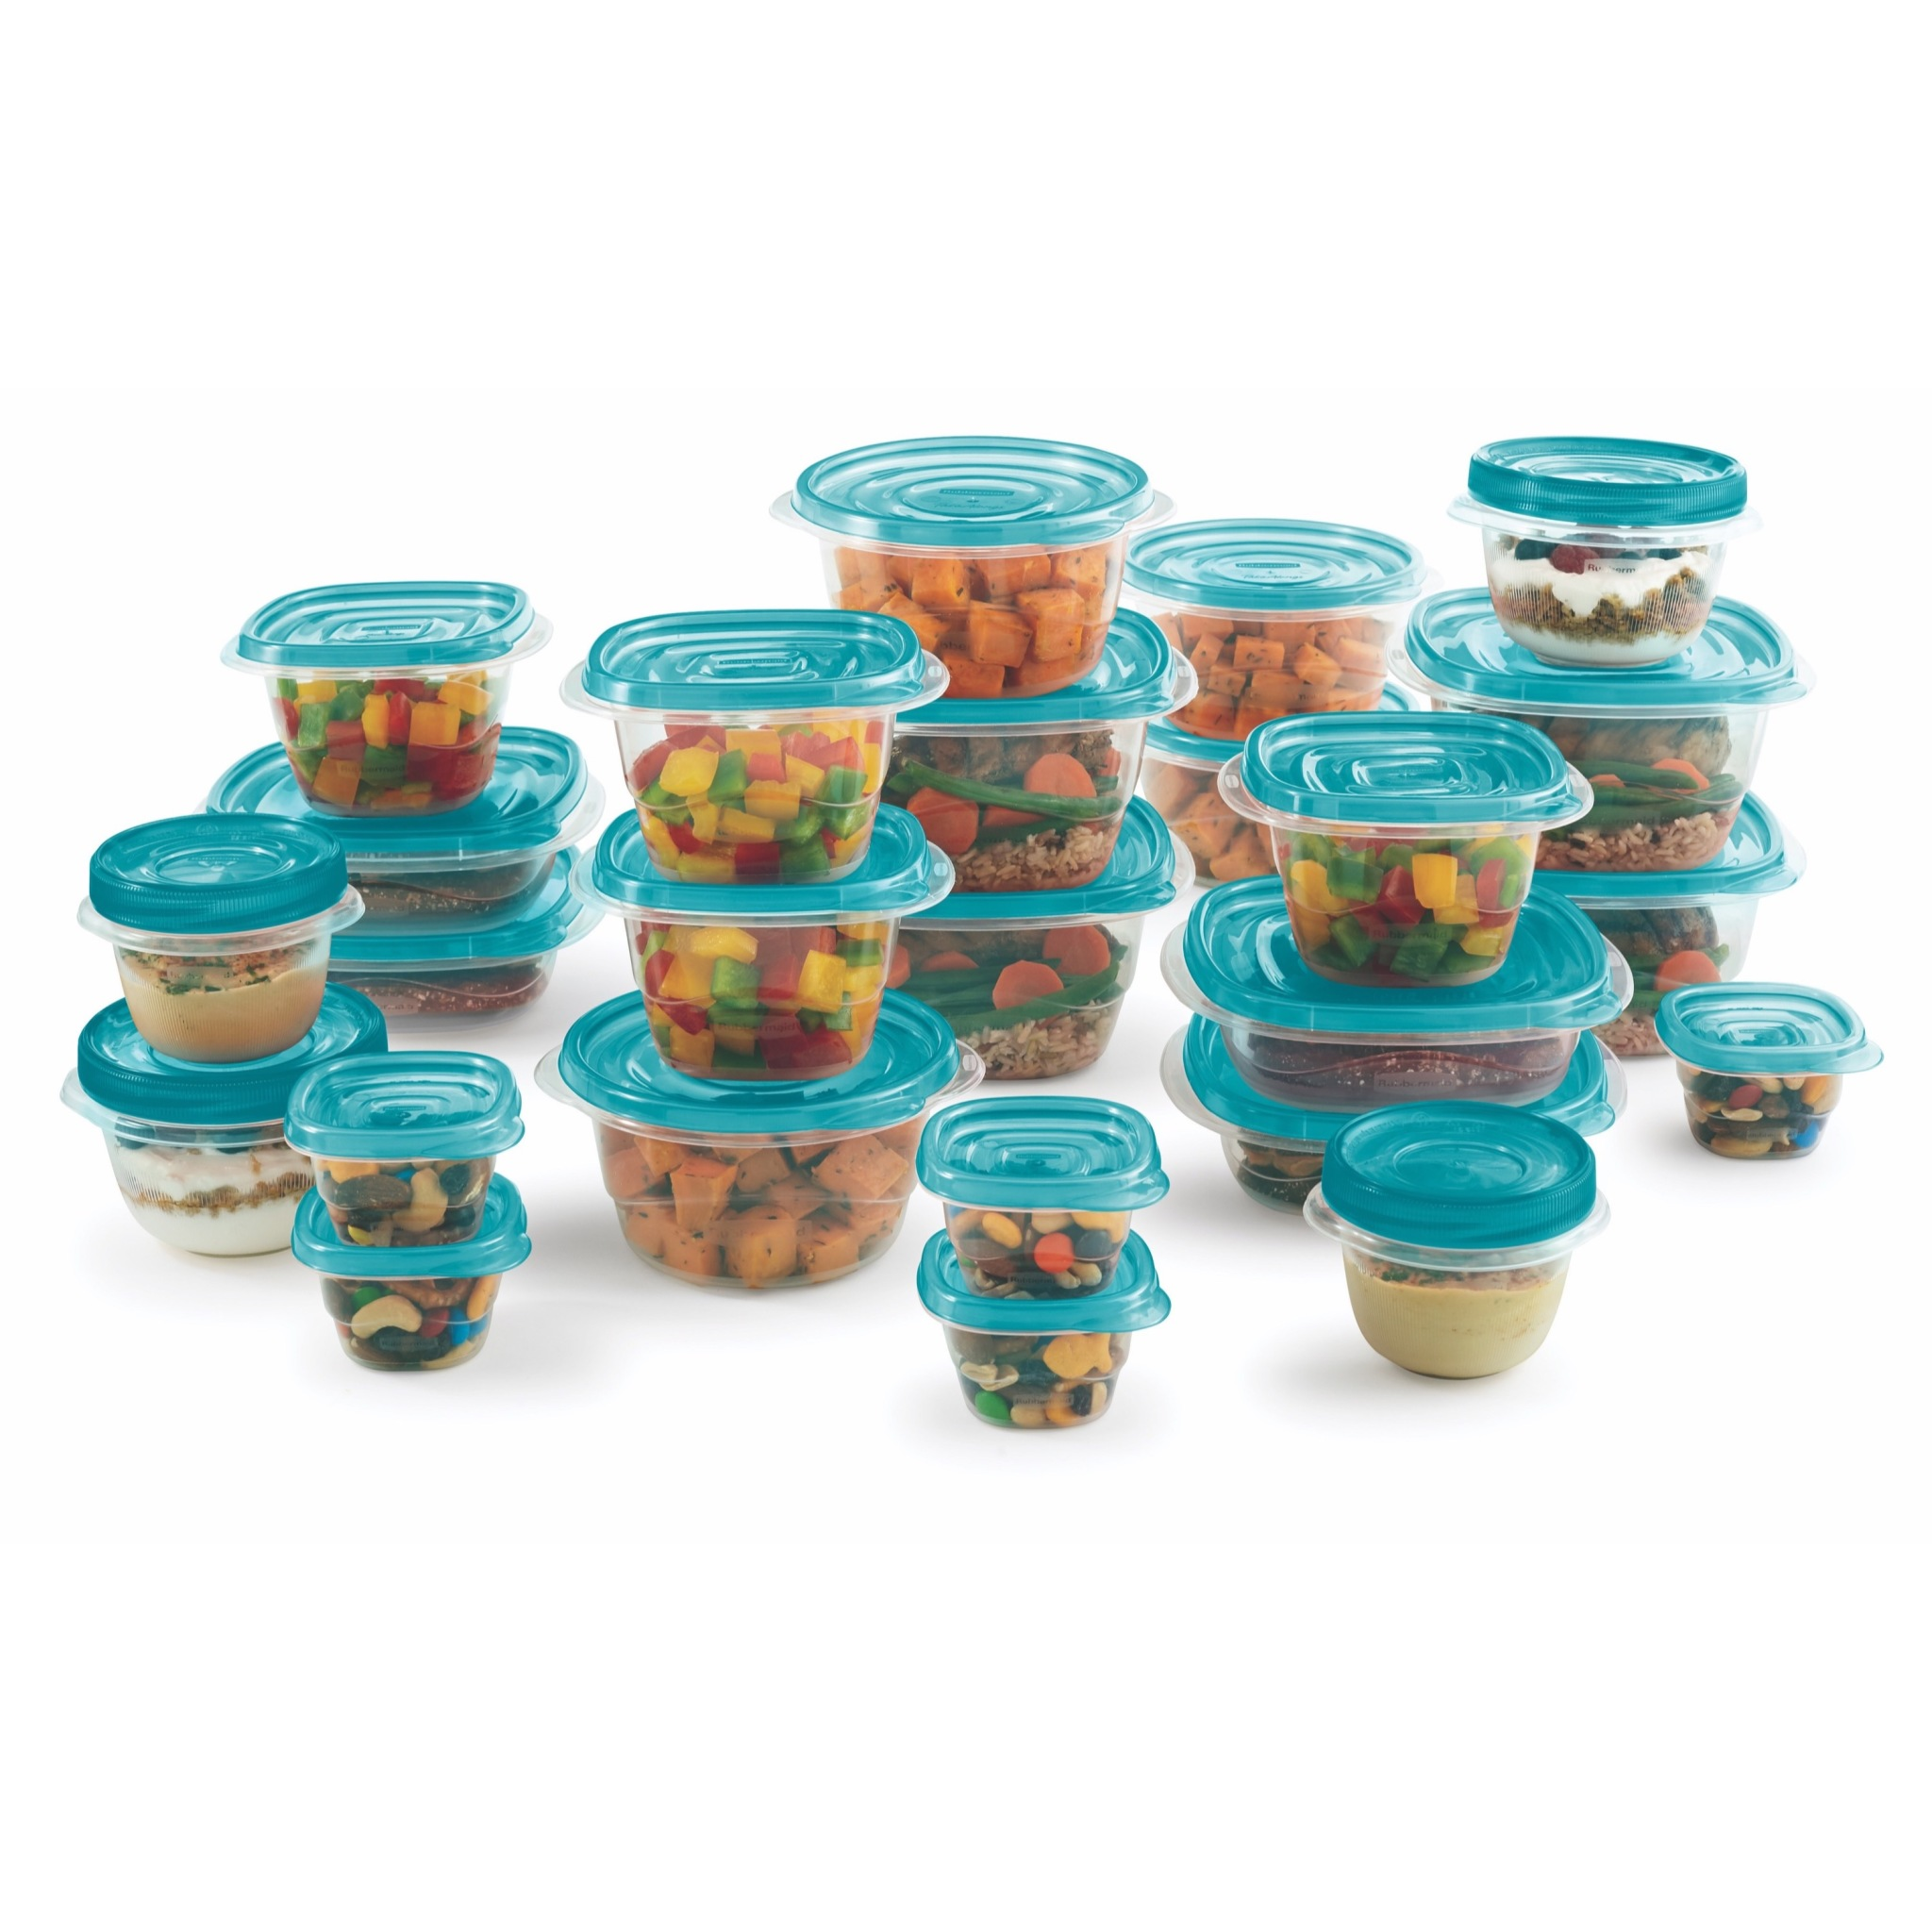 Rubbermaid 50 Pc Food Storage Takealong Teal